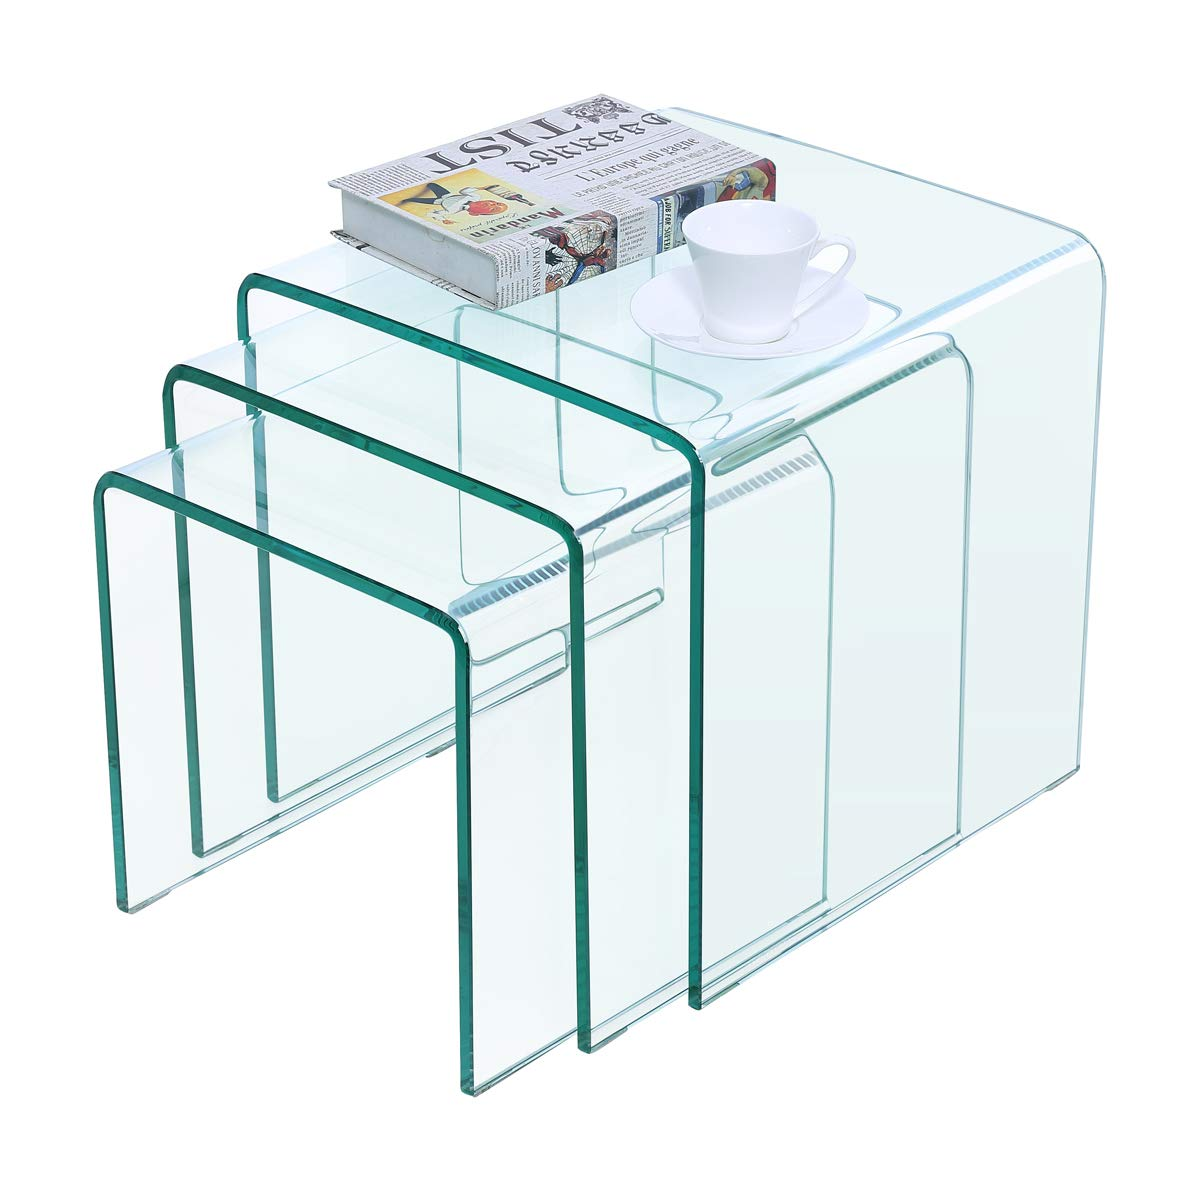 Framodo Bent Glass Coffee Table Set Of 3 Pcs Stacking Nesting End Side Tables Set Living Room Clear Tempered Glass Amazon In Home Kitchen [ 1191 x 1200 Pixel ]